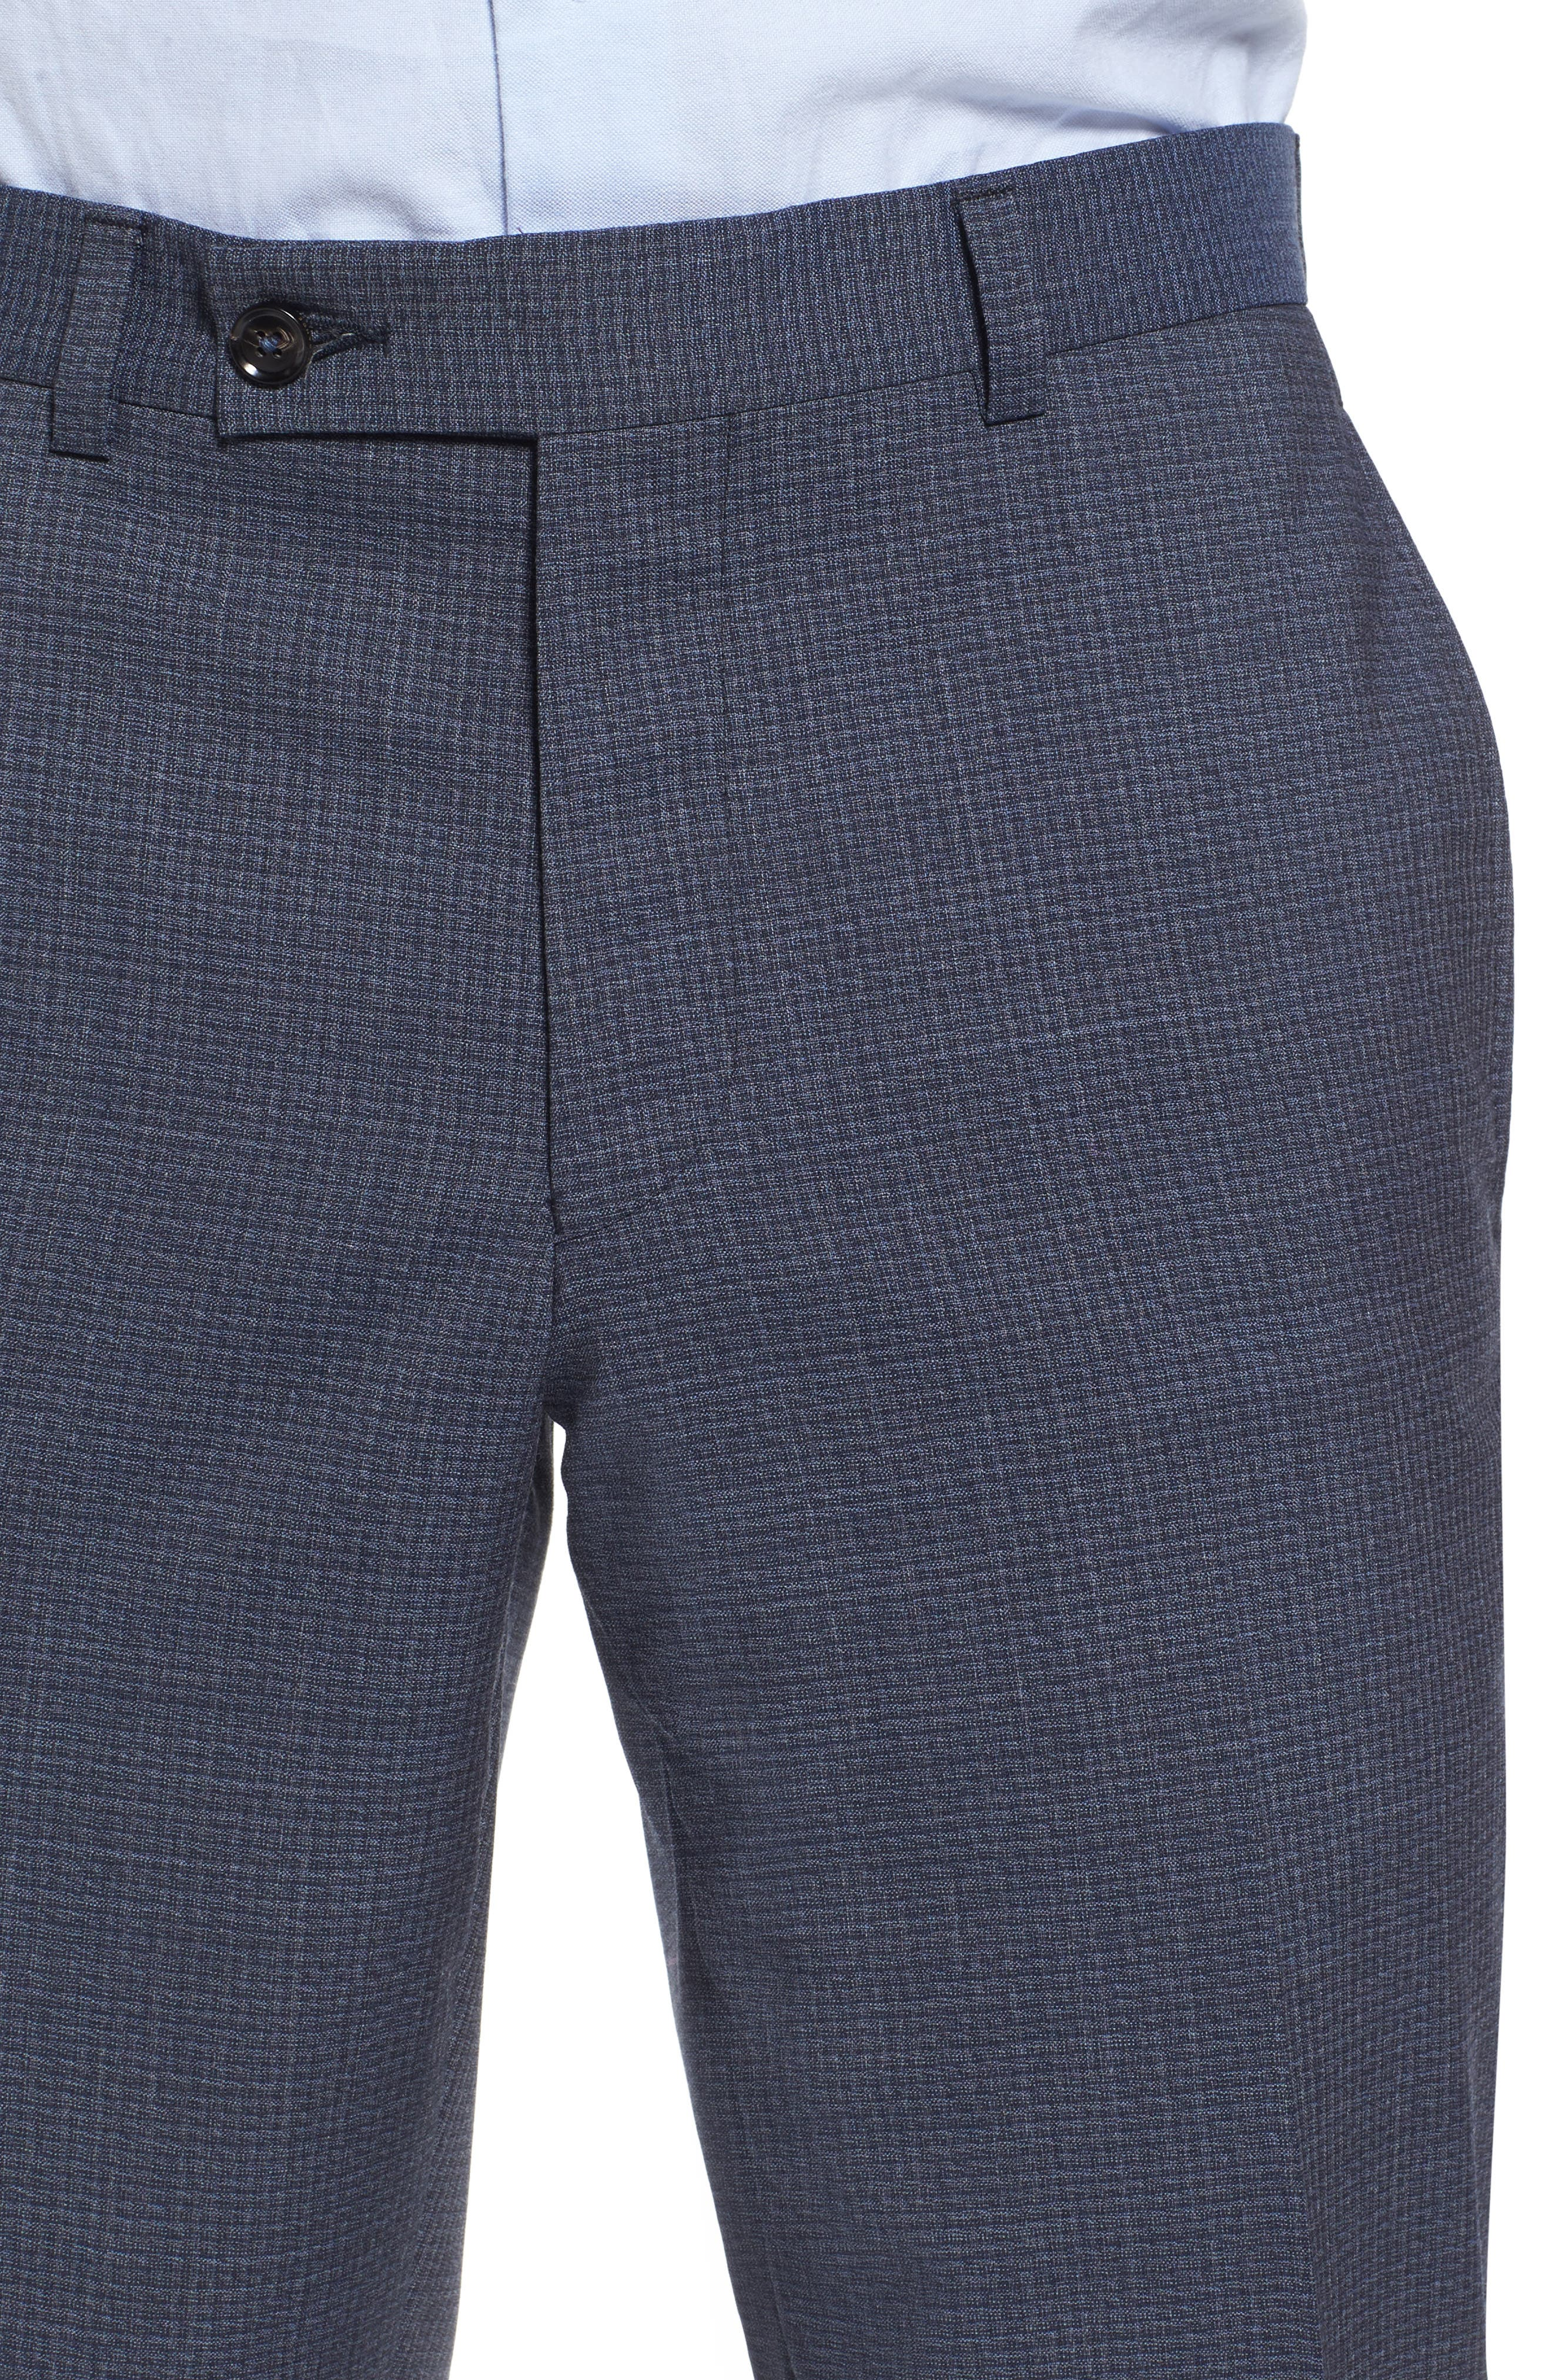 Flat Front Check Wool Trousers,                             Alternate thumbnail 4, color,                             Blue